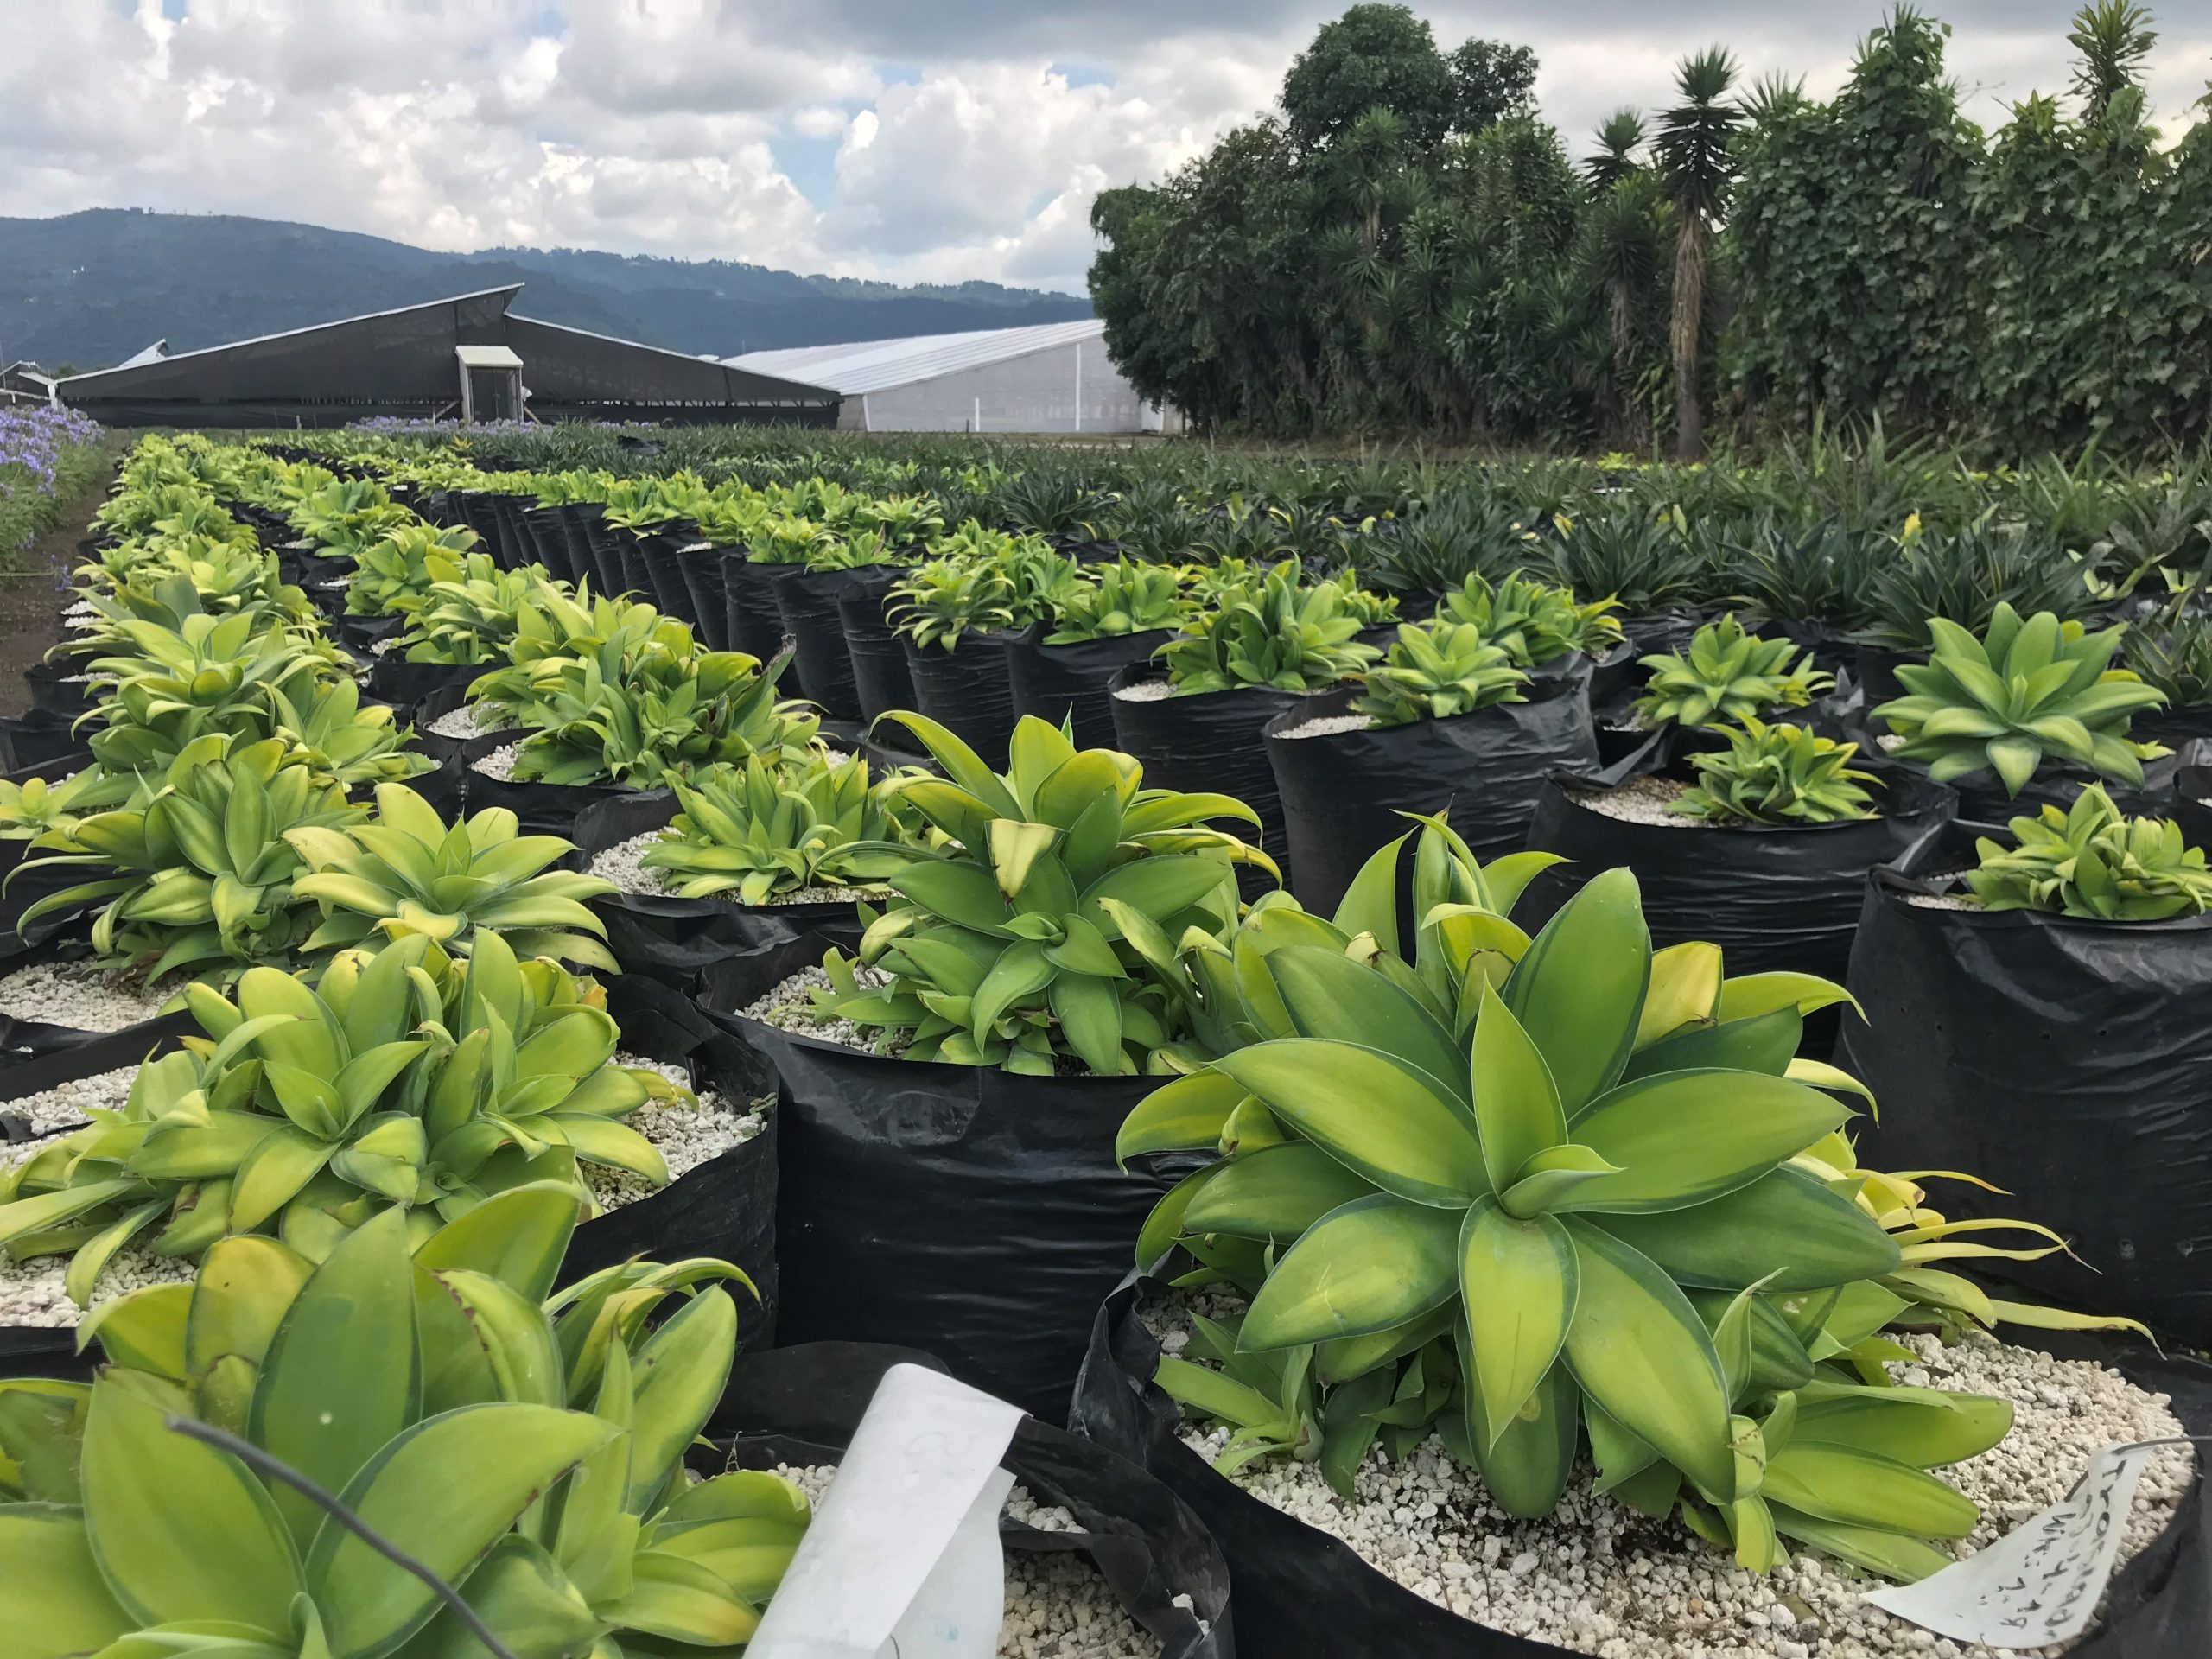 Growing ornamental plants at the crossroads of world trade